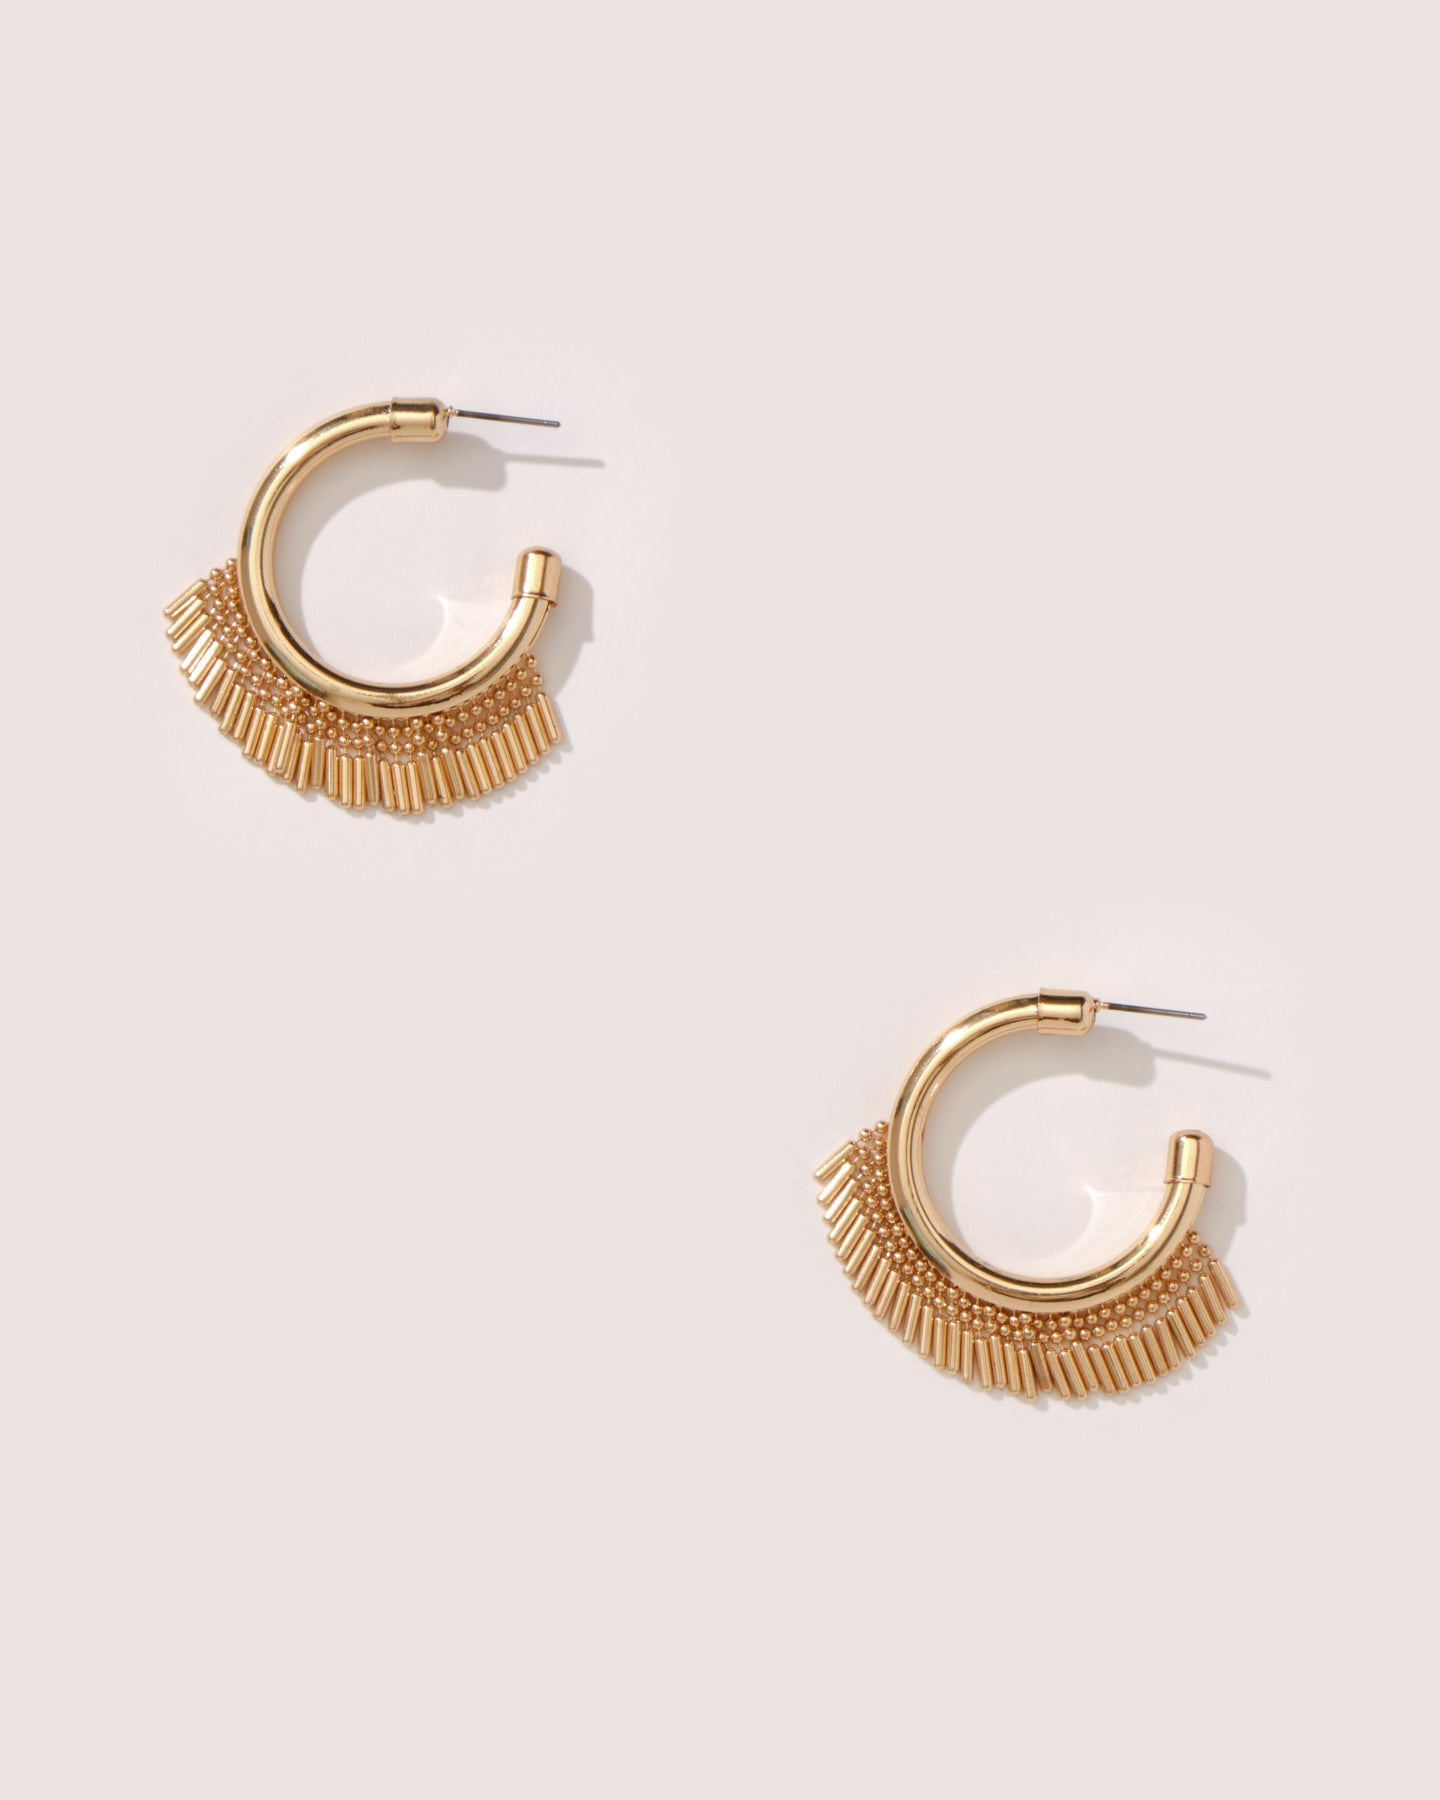 ABIGAIL FRINGE EARRINGS